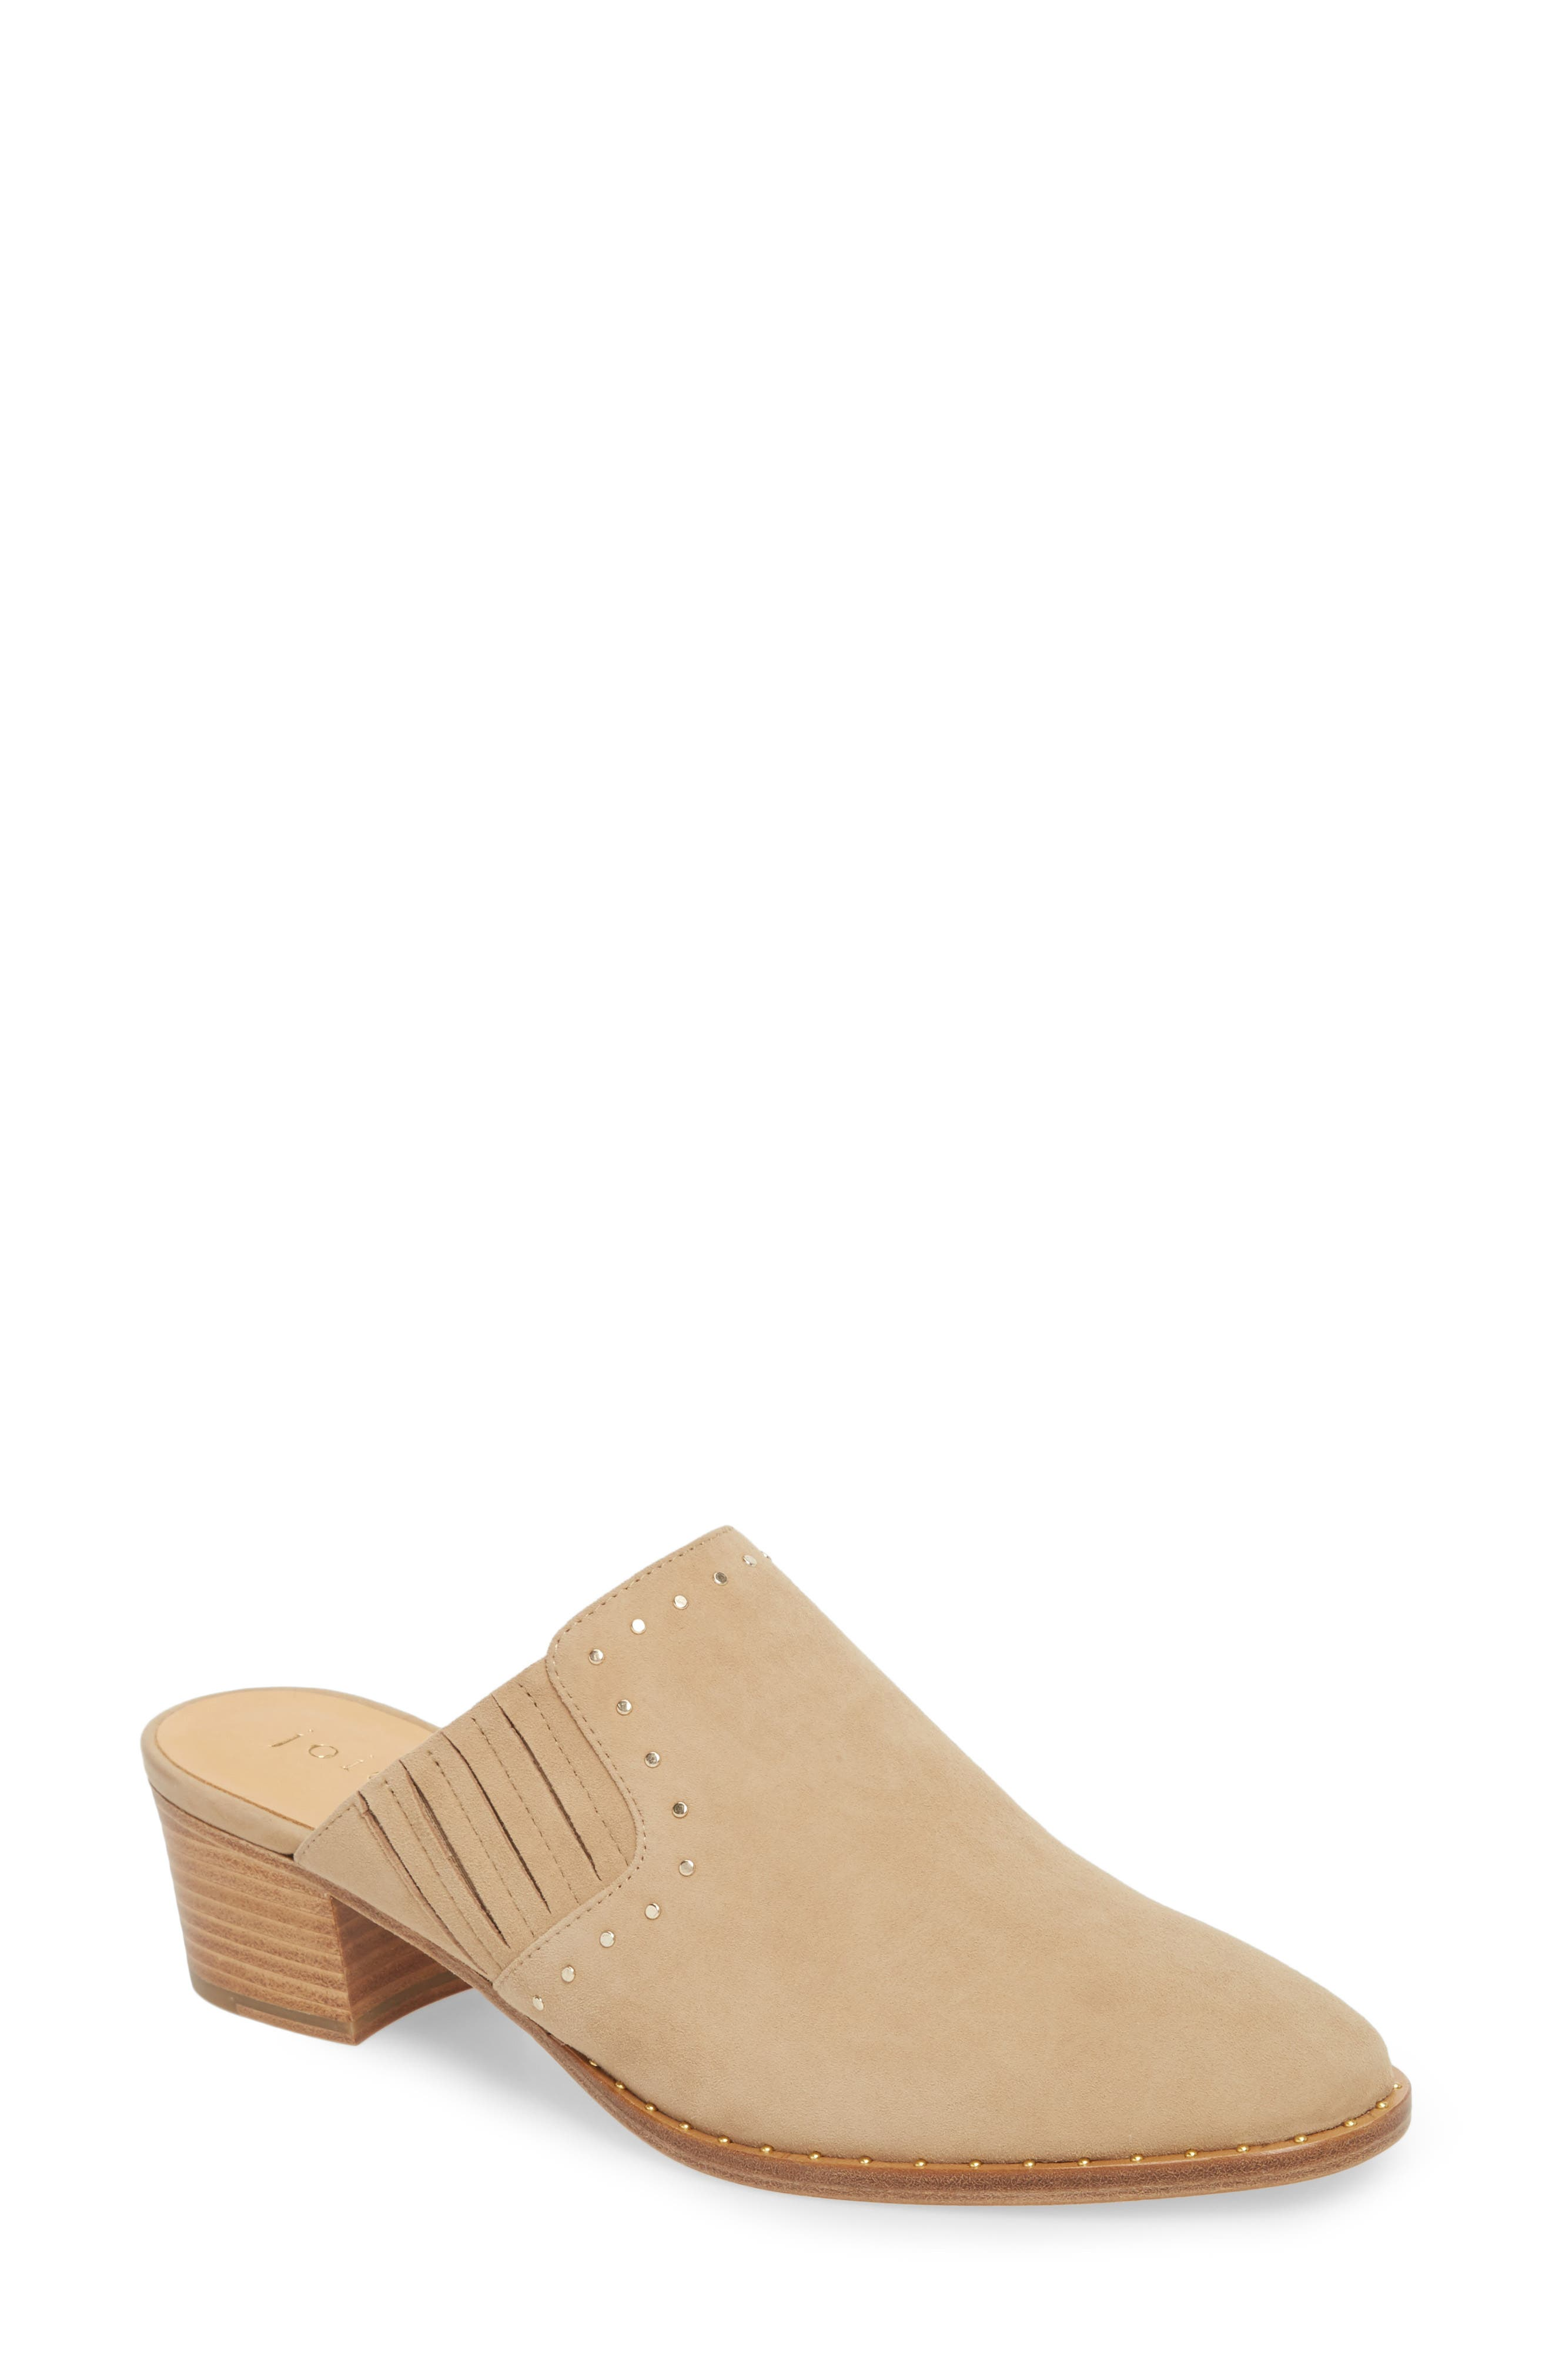 Fayla Studded Mule,                             Main thumbnail 1, color,                             SAND